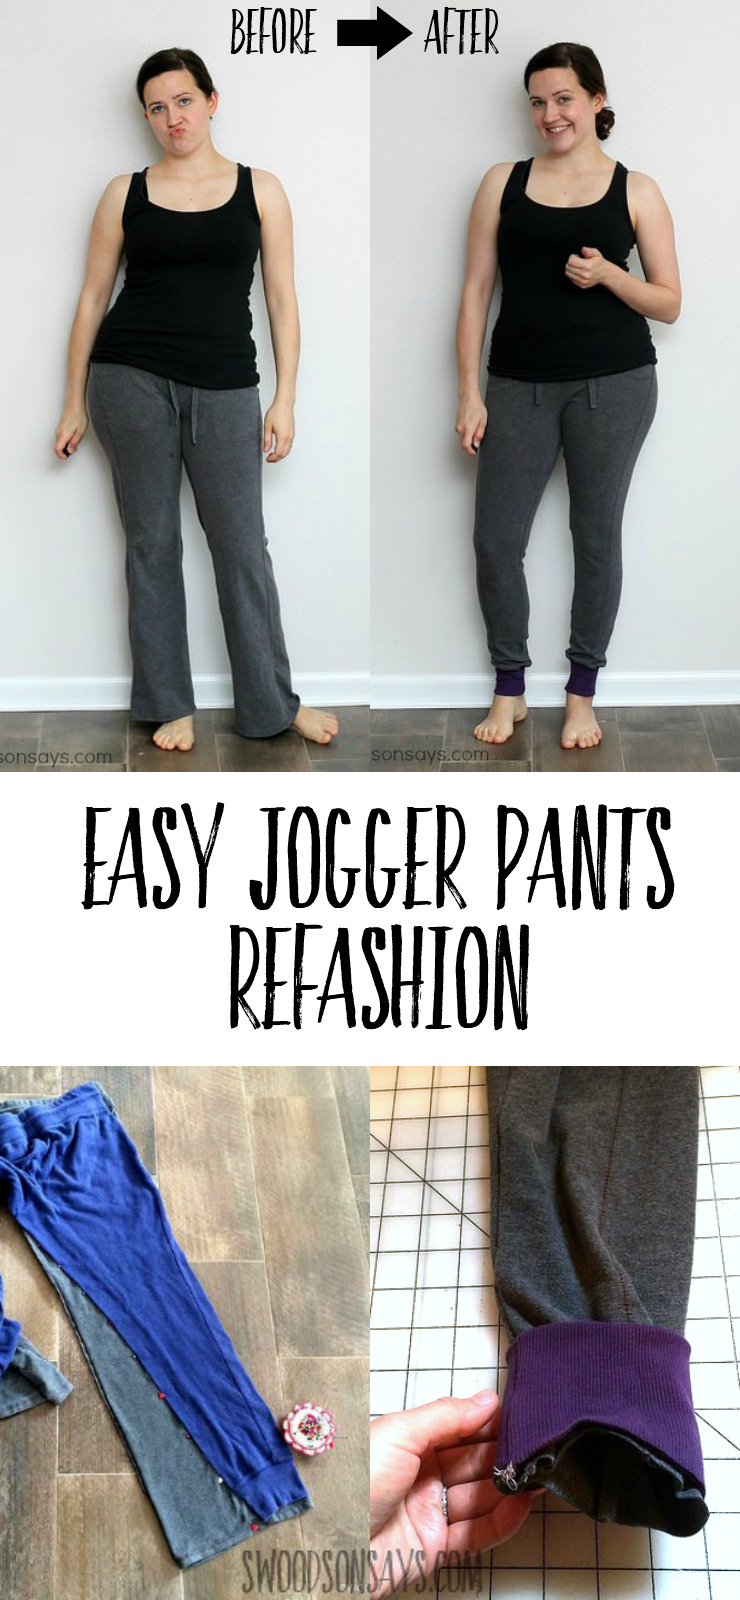 Refashion baggy sweatpants into joggers! This easy sewing tutorial will show you how to sew handmade joggers, no pattern required. #refashion